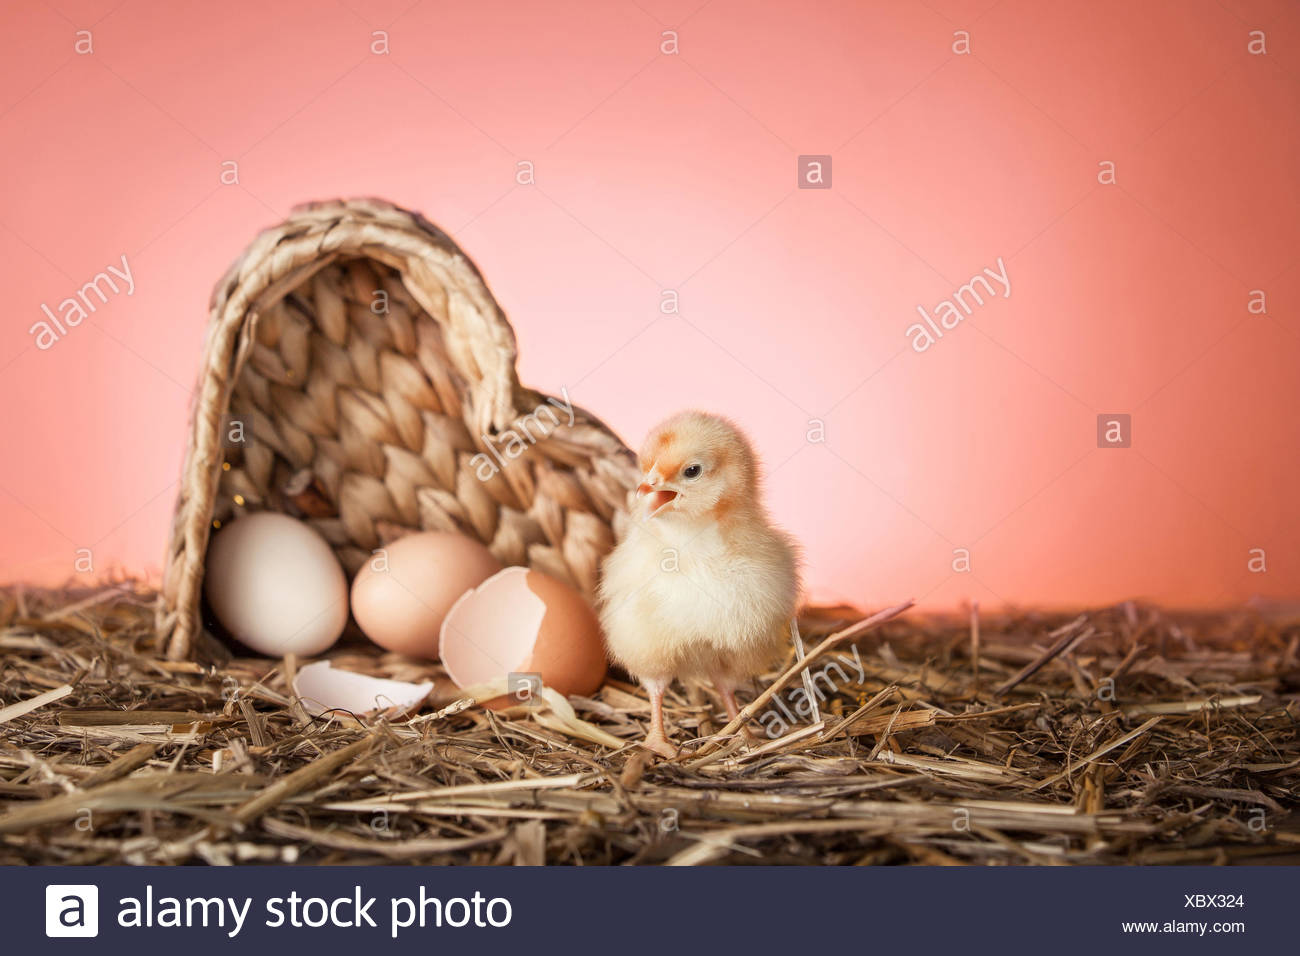 newly hatched chick - Stock Image